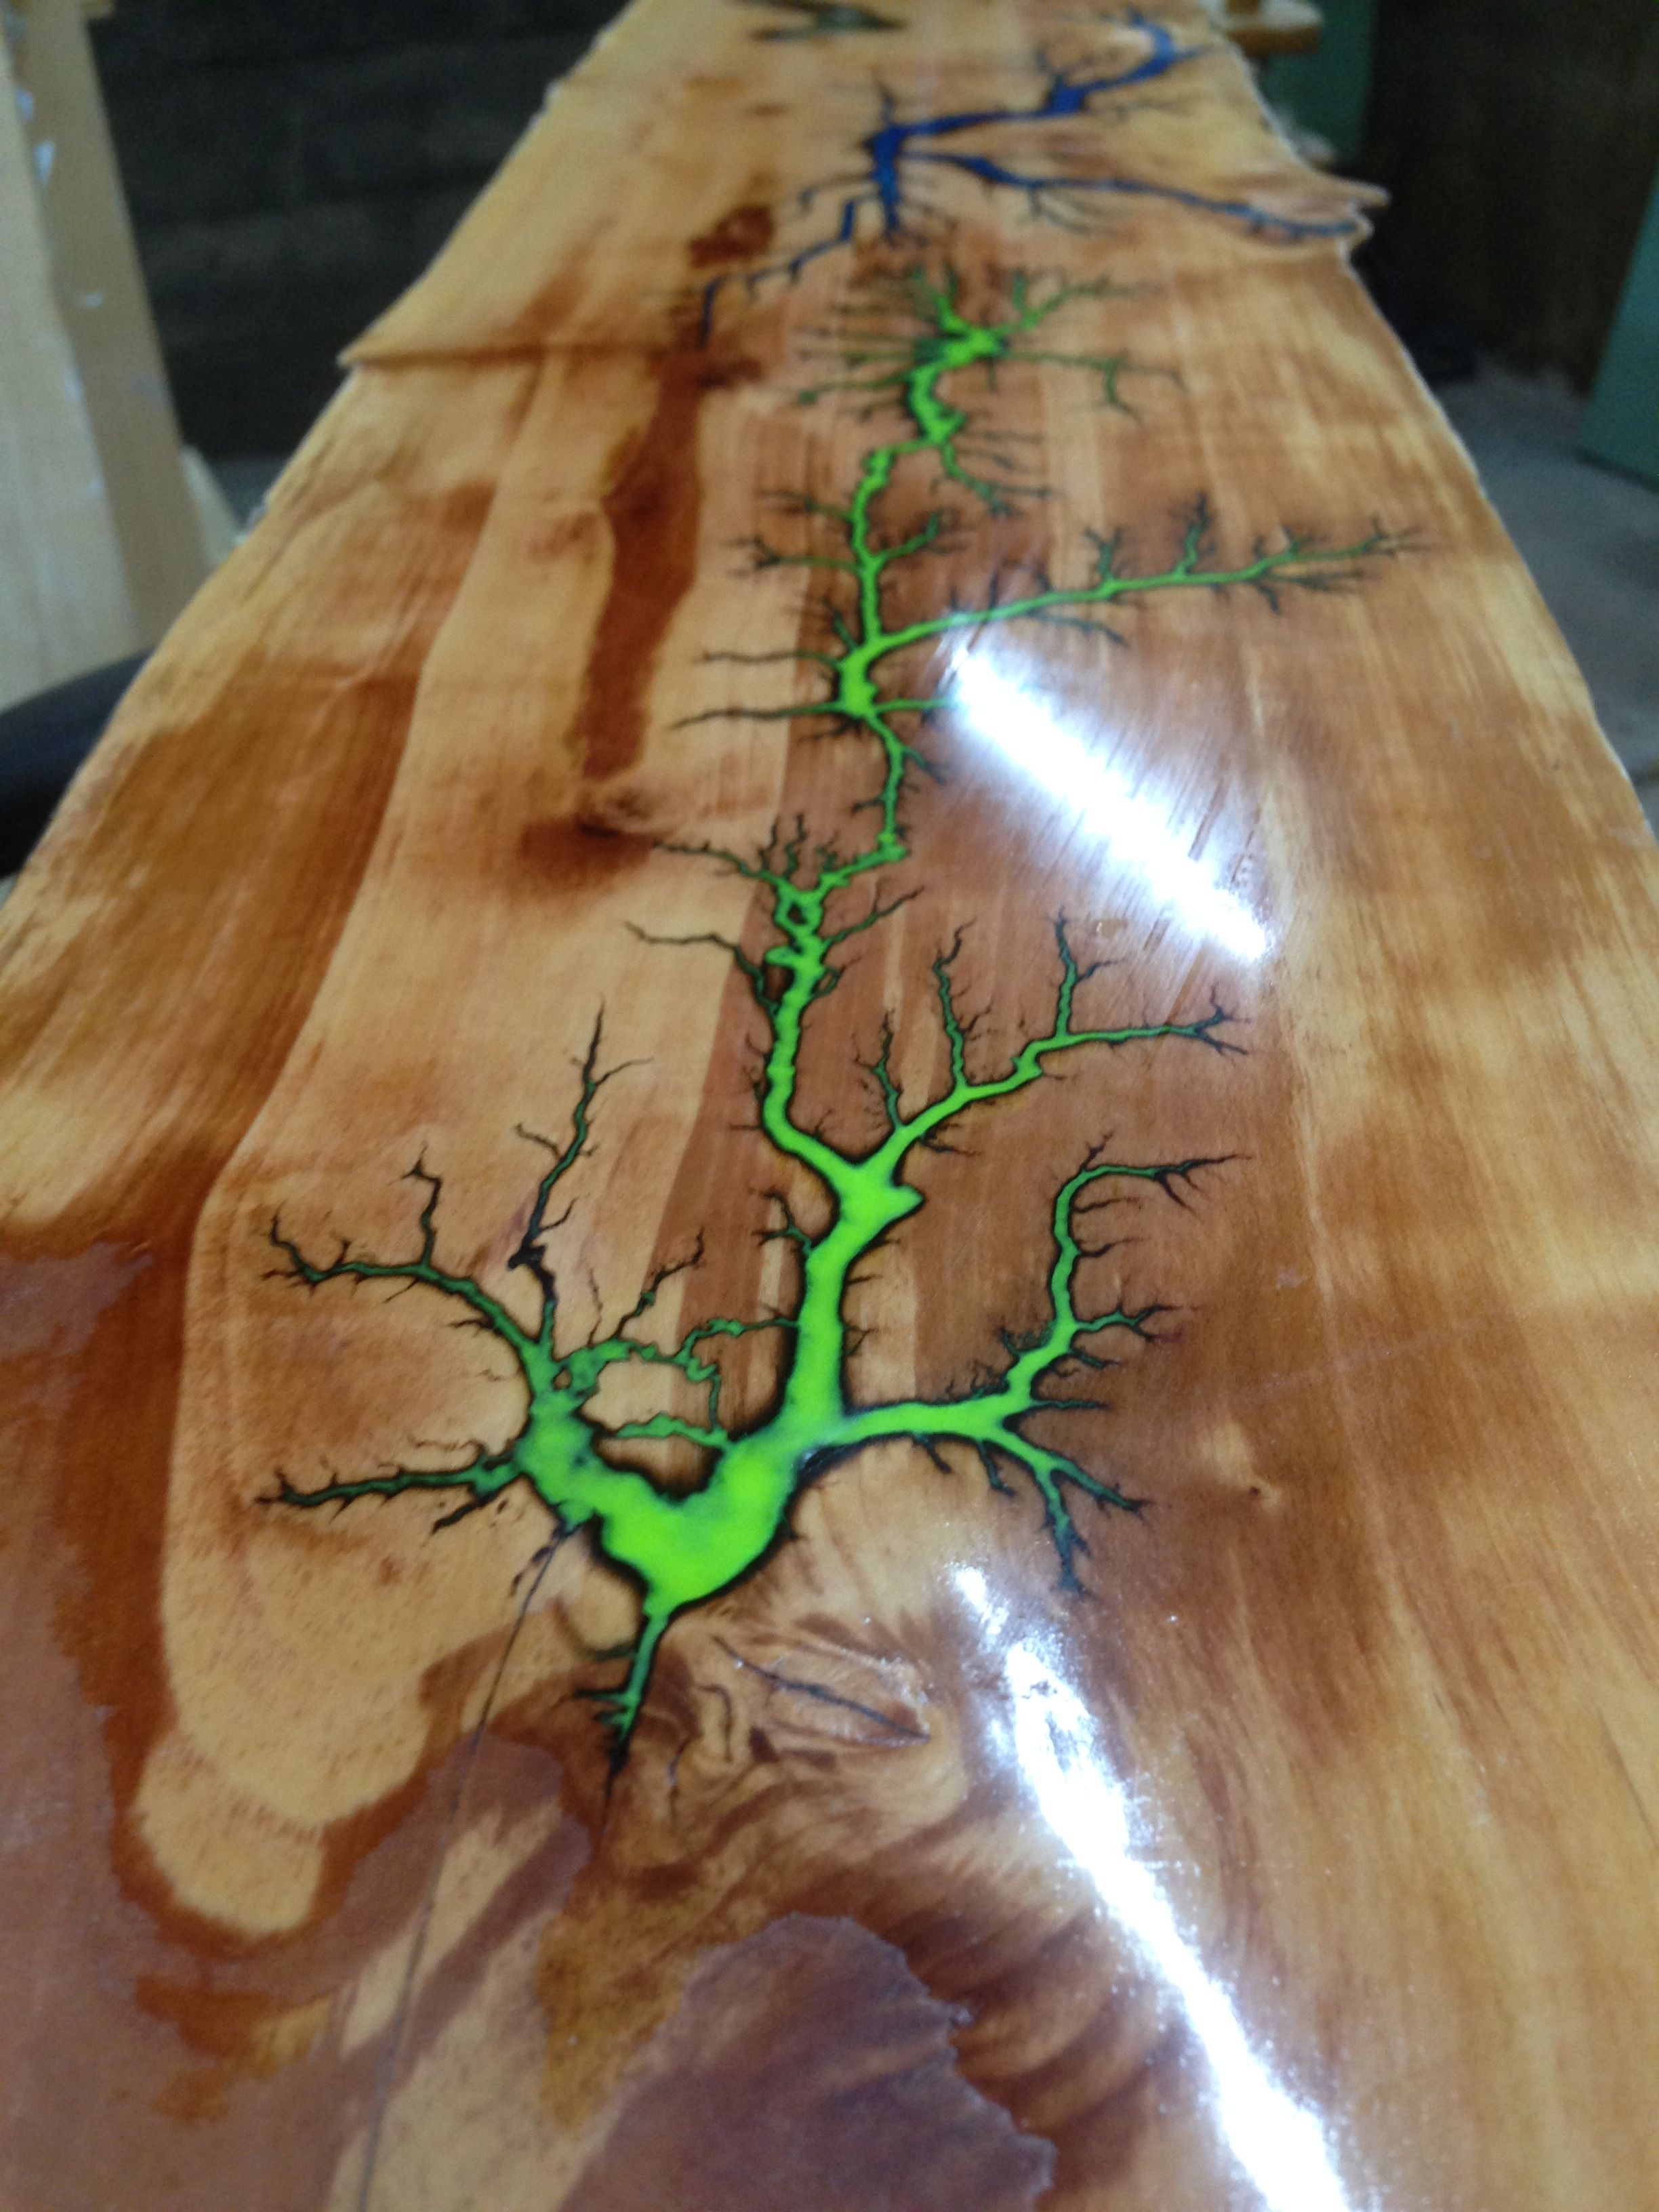 Fractal Burning With Luminous Glow In The Dark Epoxy Resin